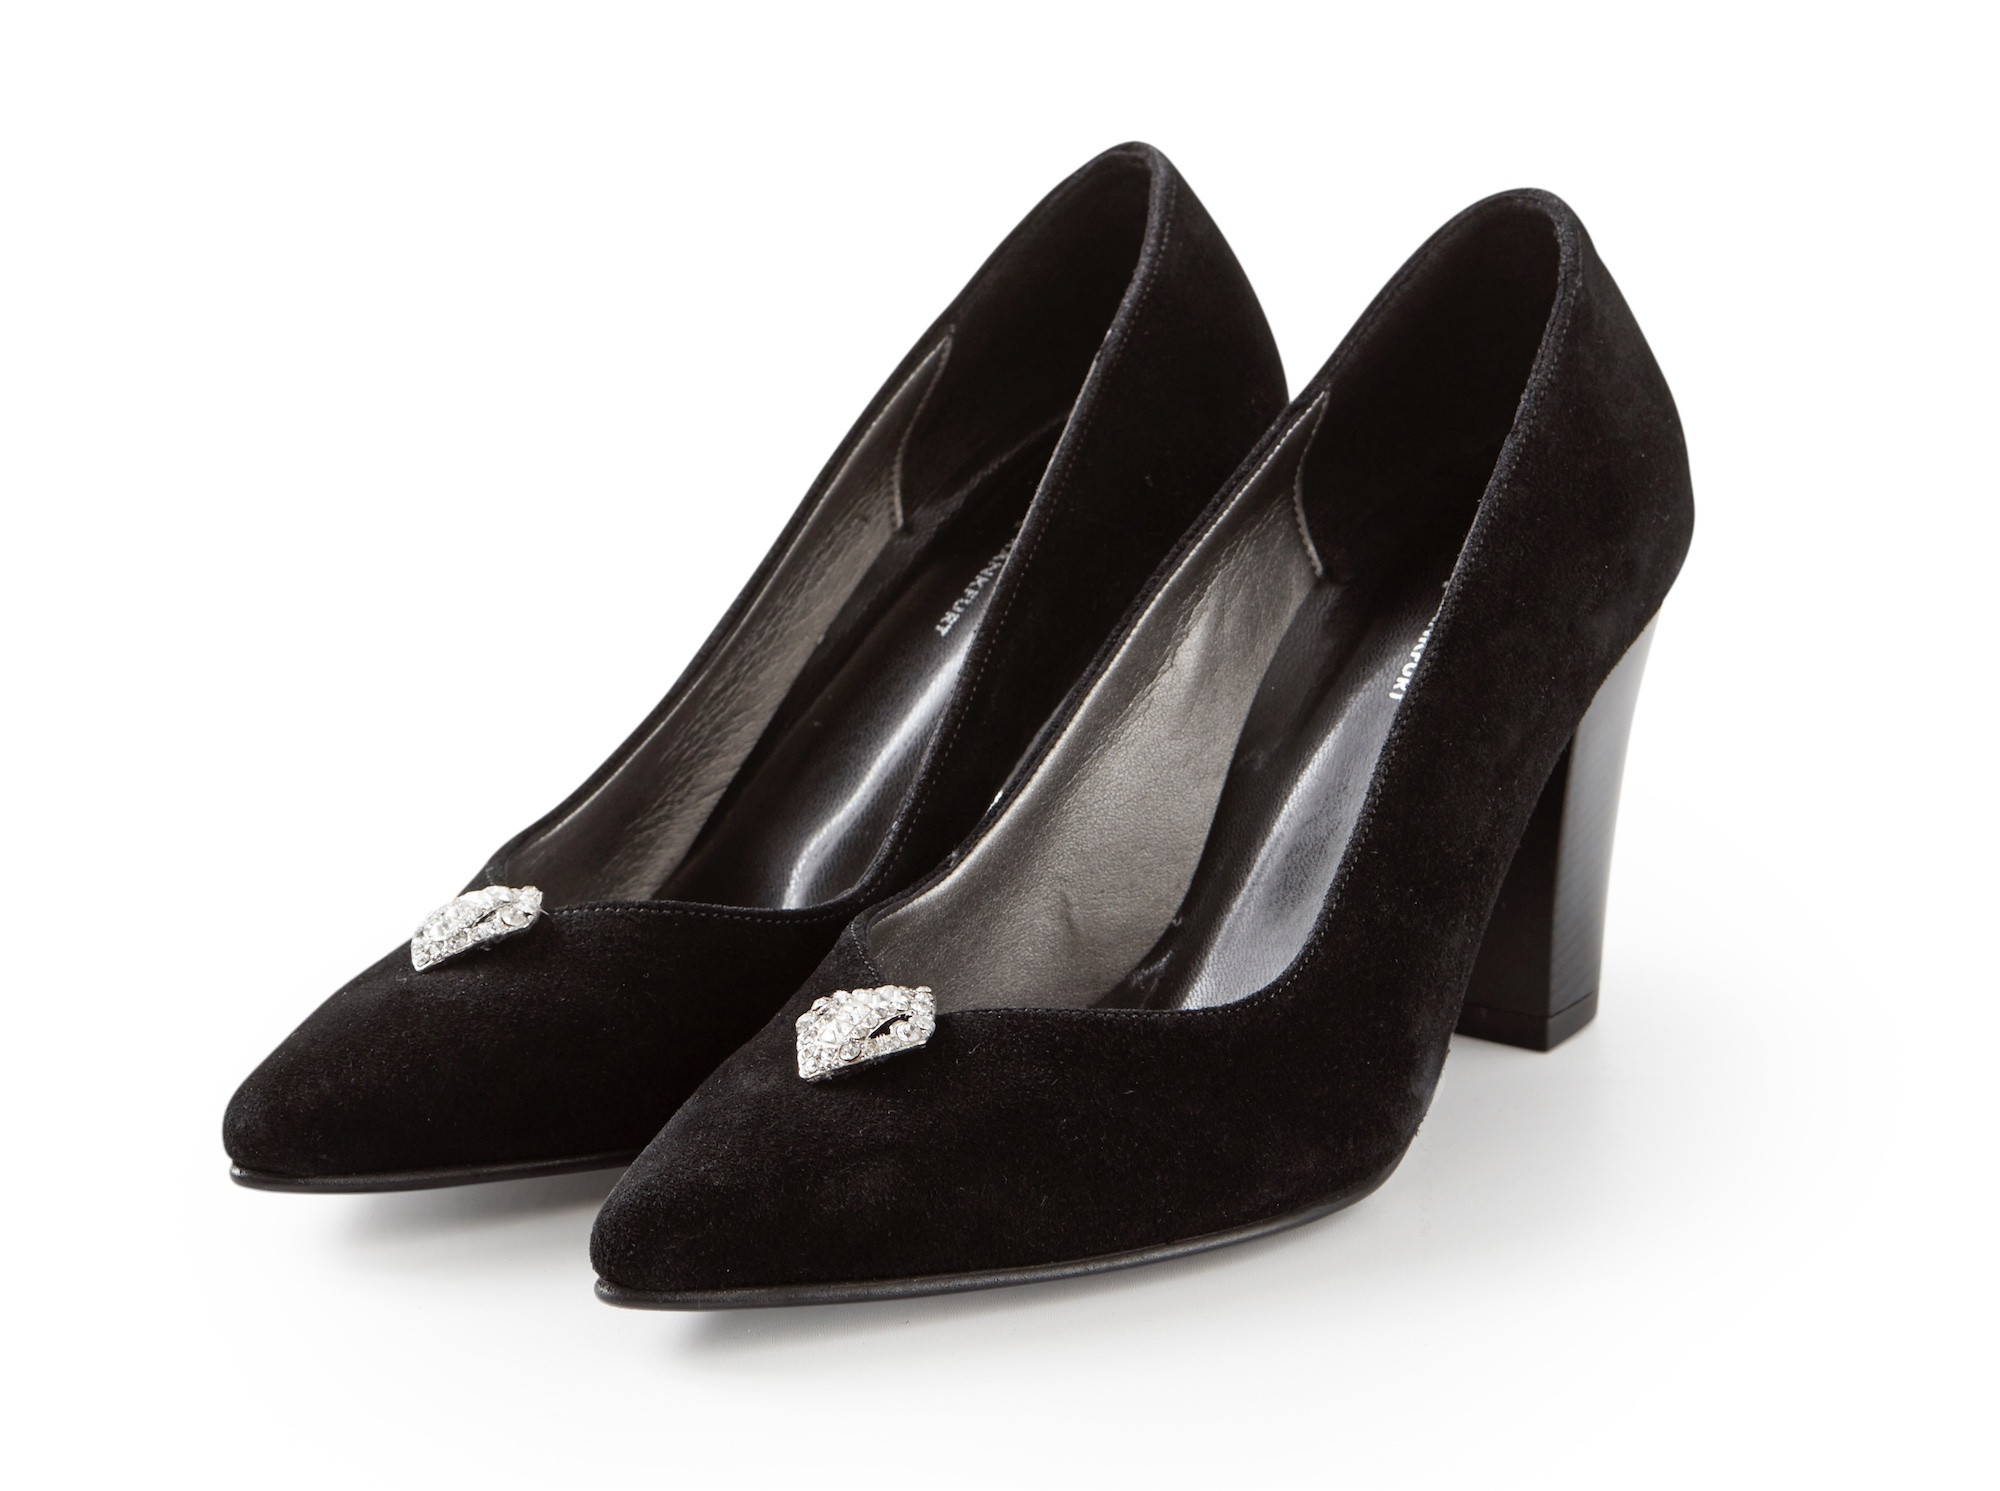 NOREEN SHOES